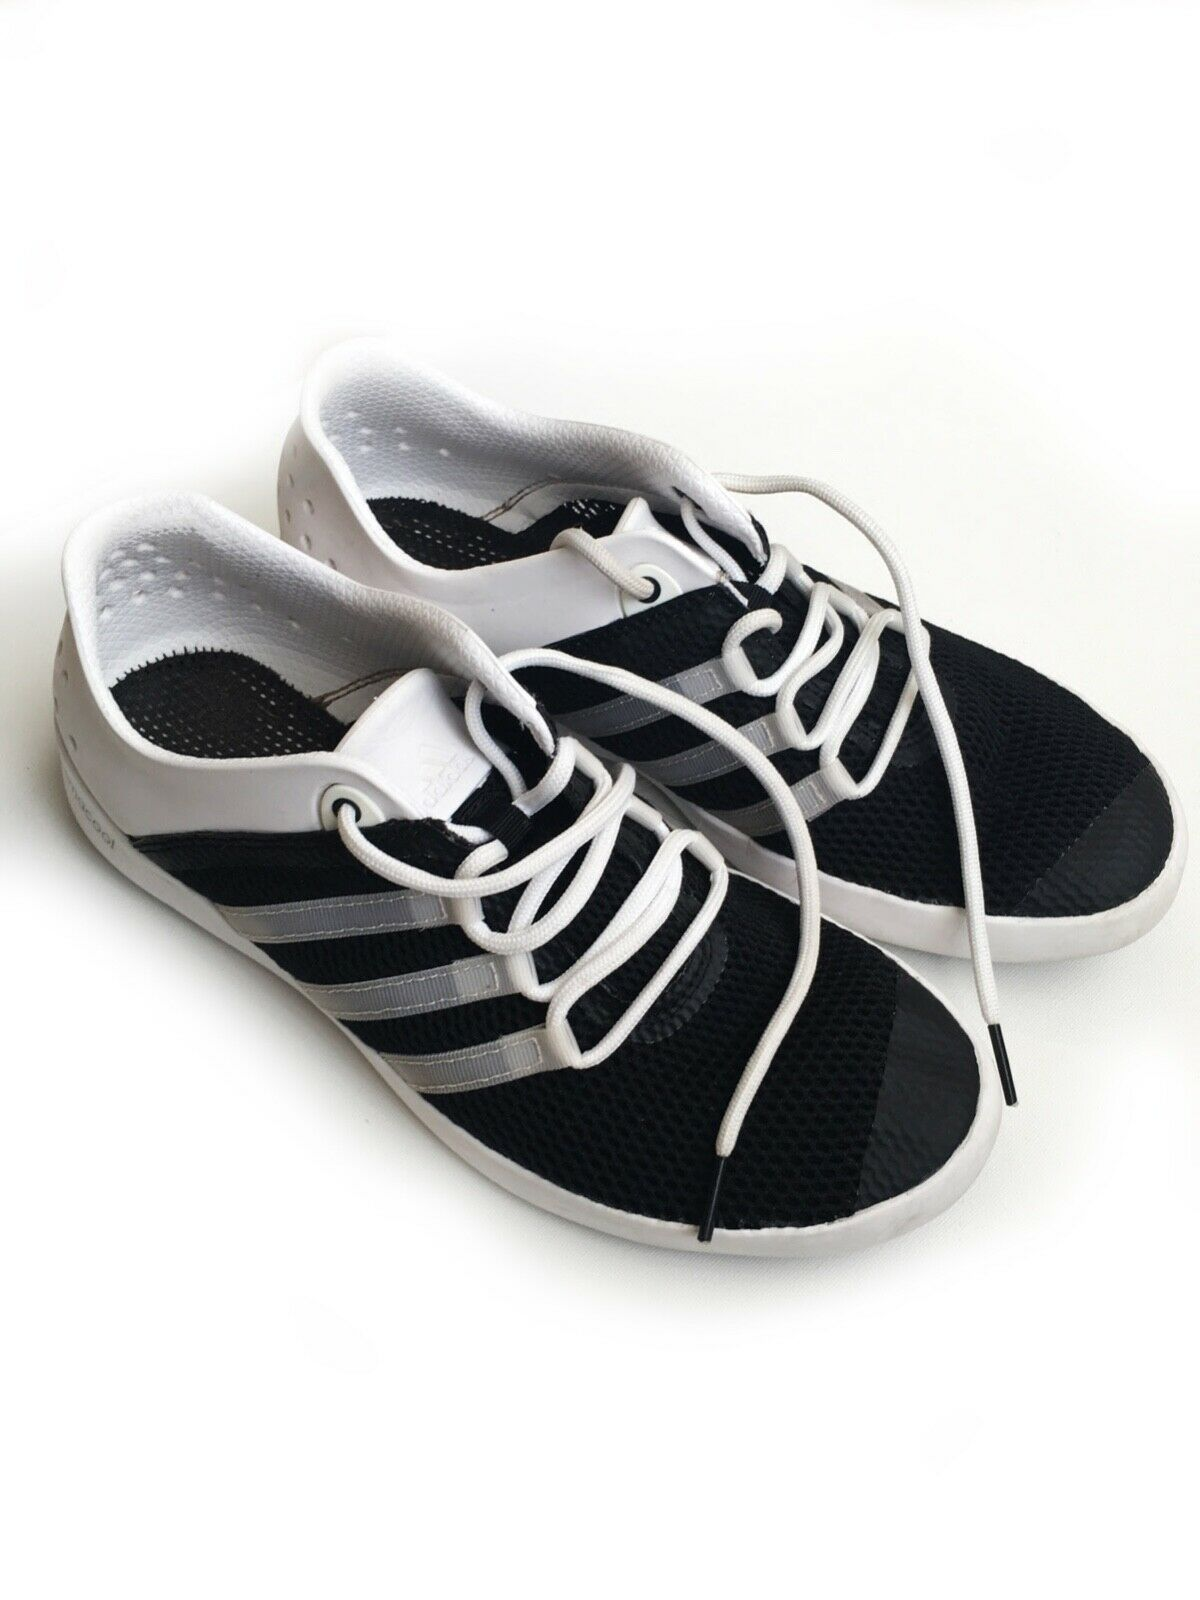 Pre-owned athletic Adidas summer shoes men US 8 1 2